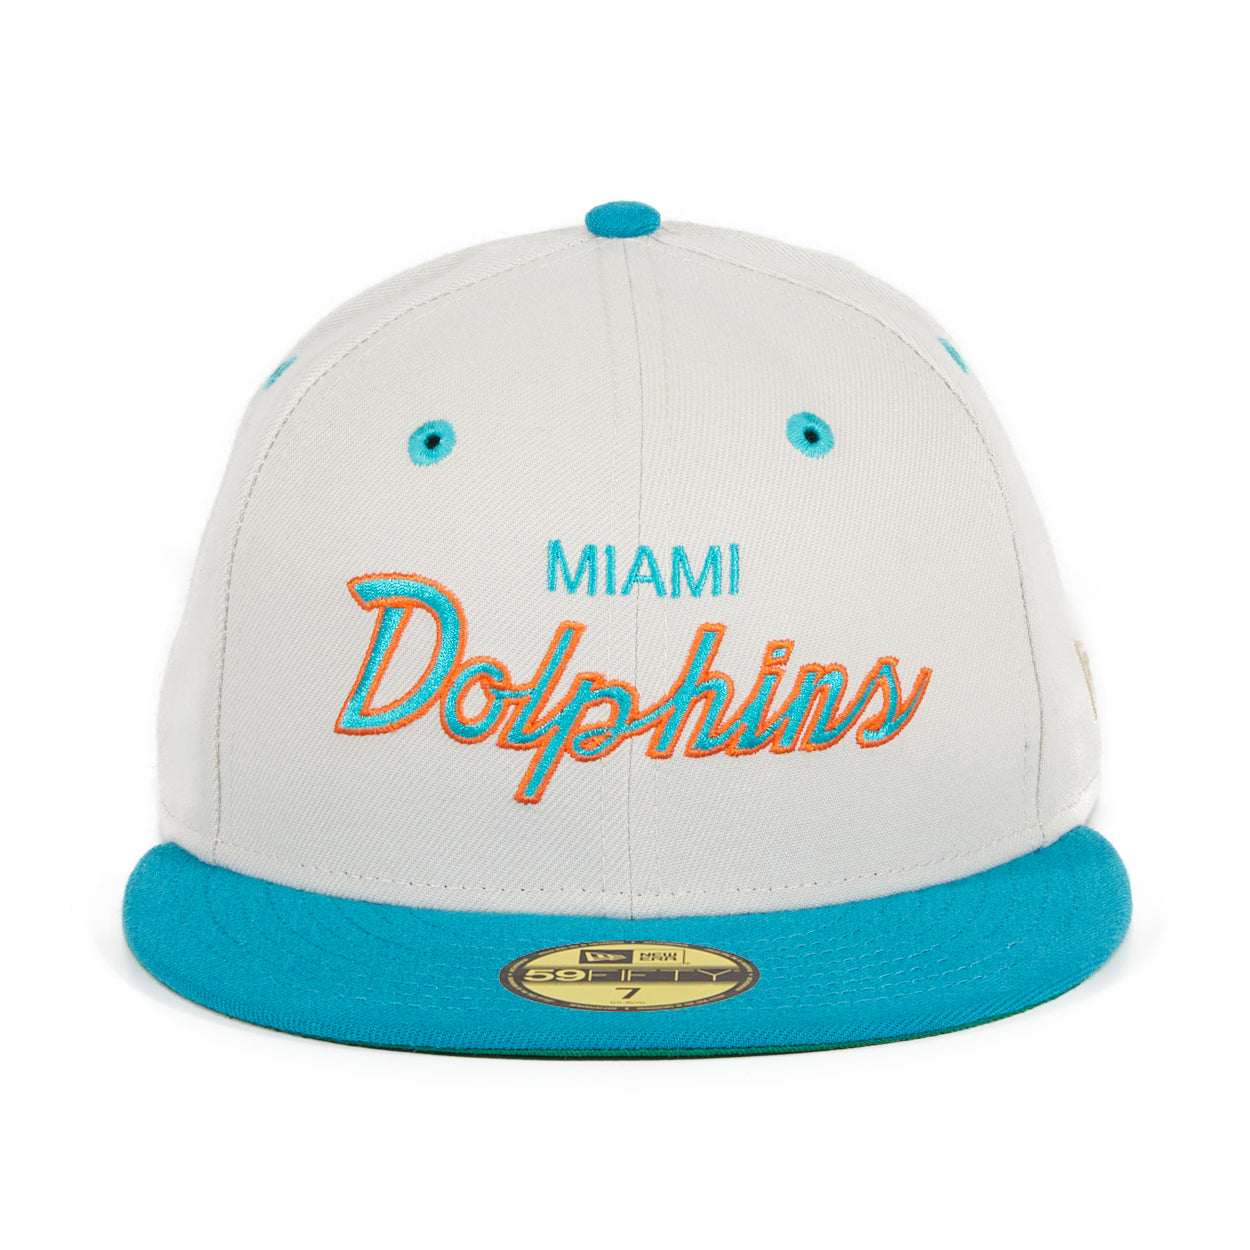 Exclusive New Era 59Fifty Miami Dolphins Script Hat - 2T Stone, Teal